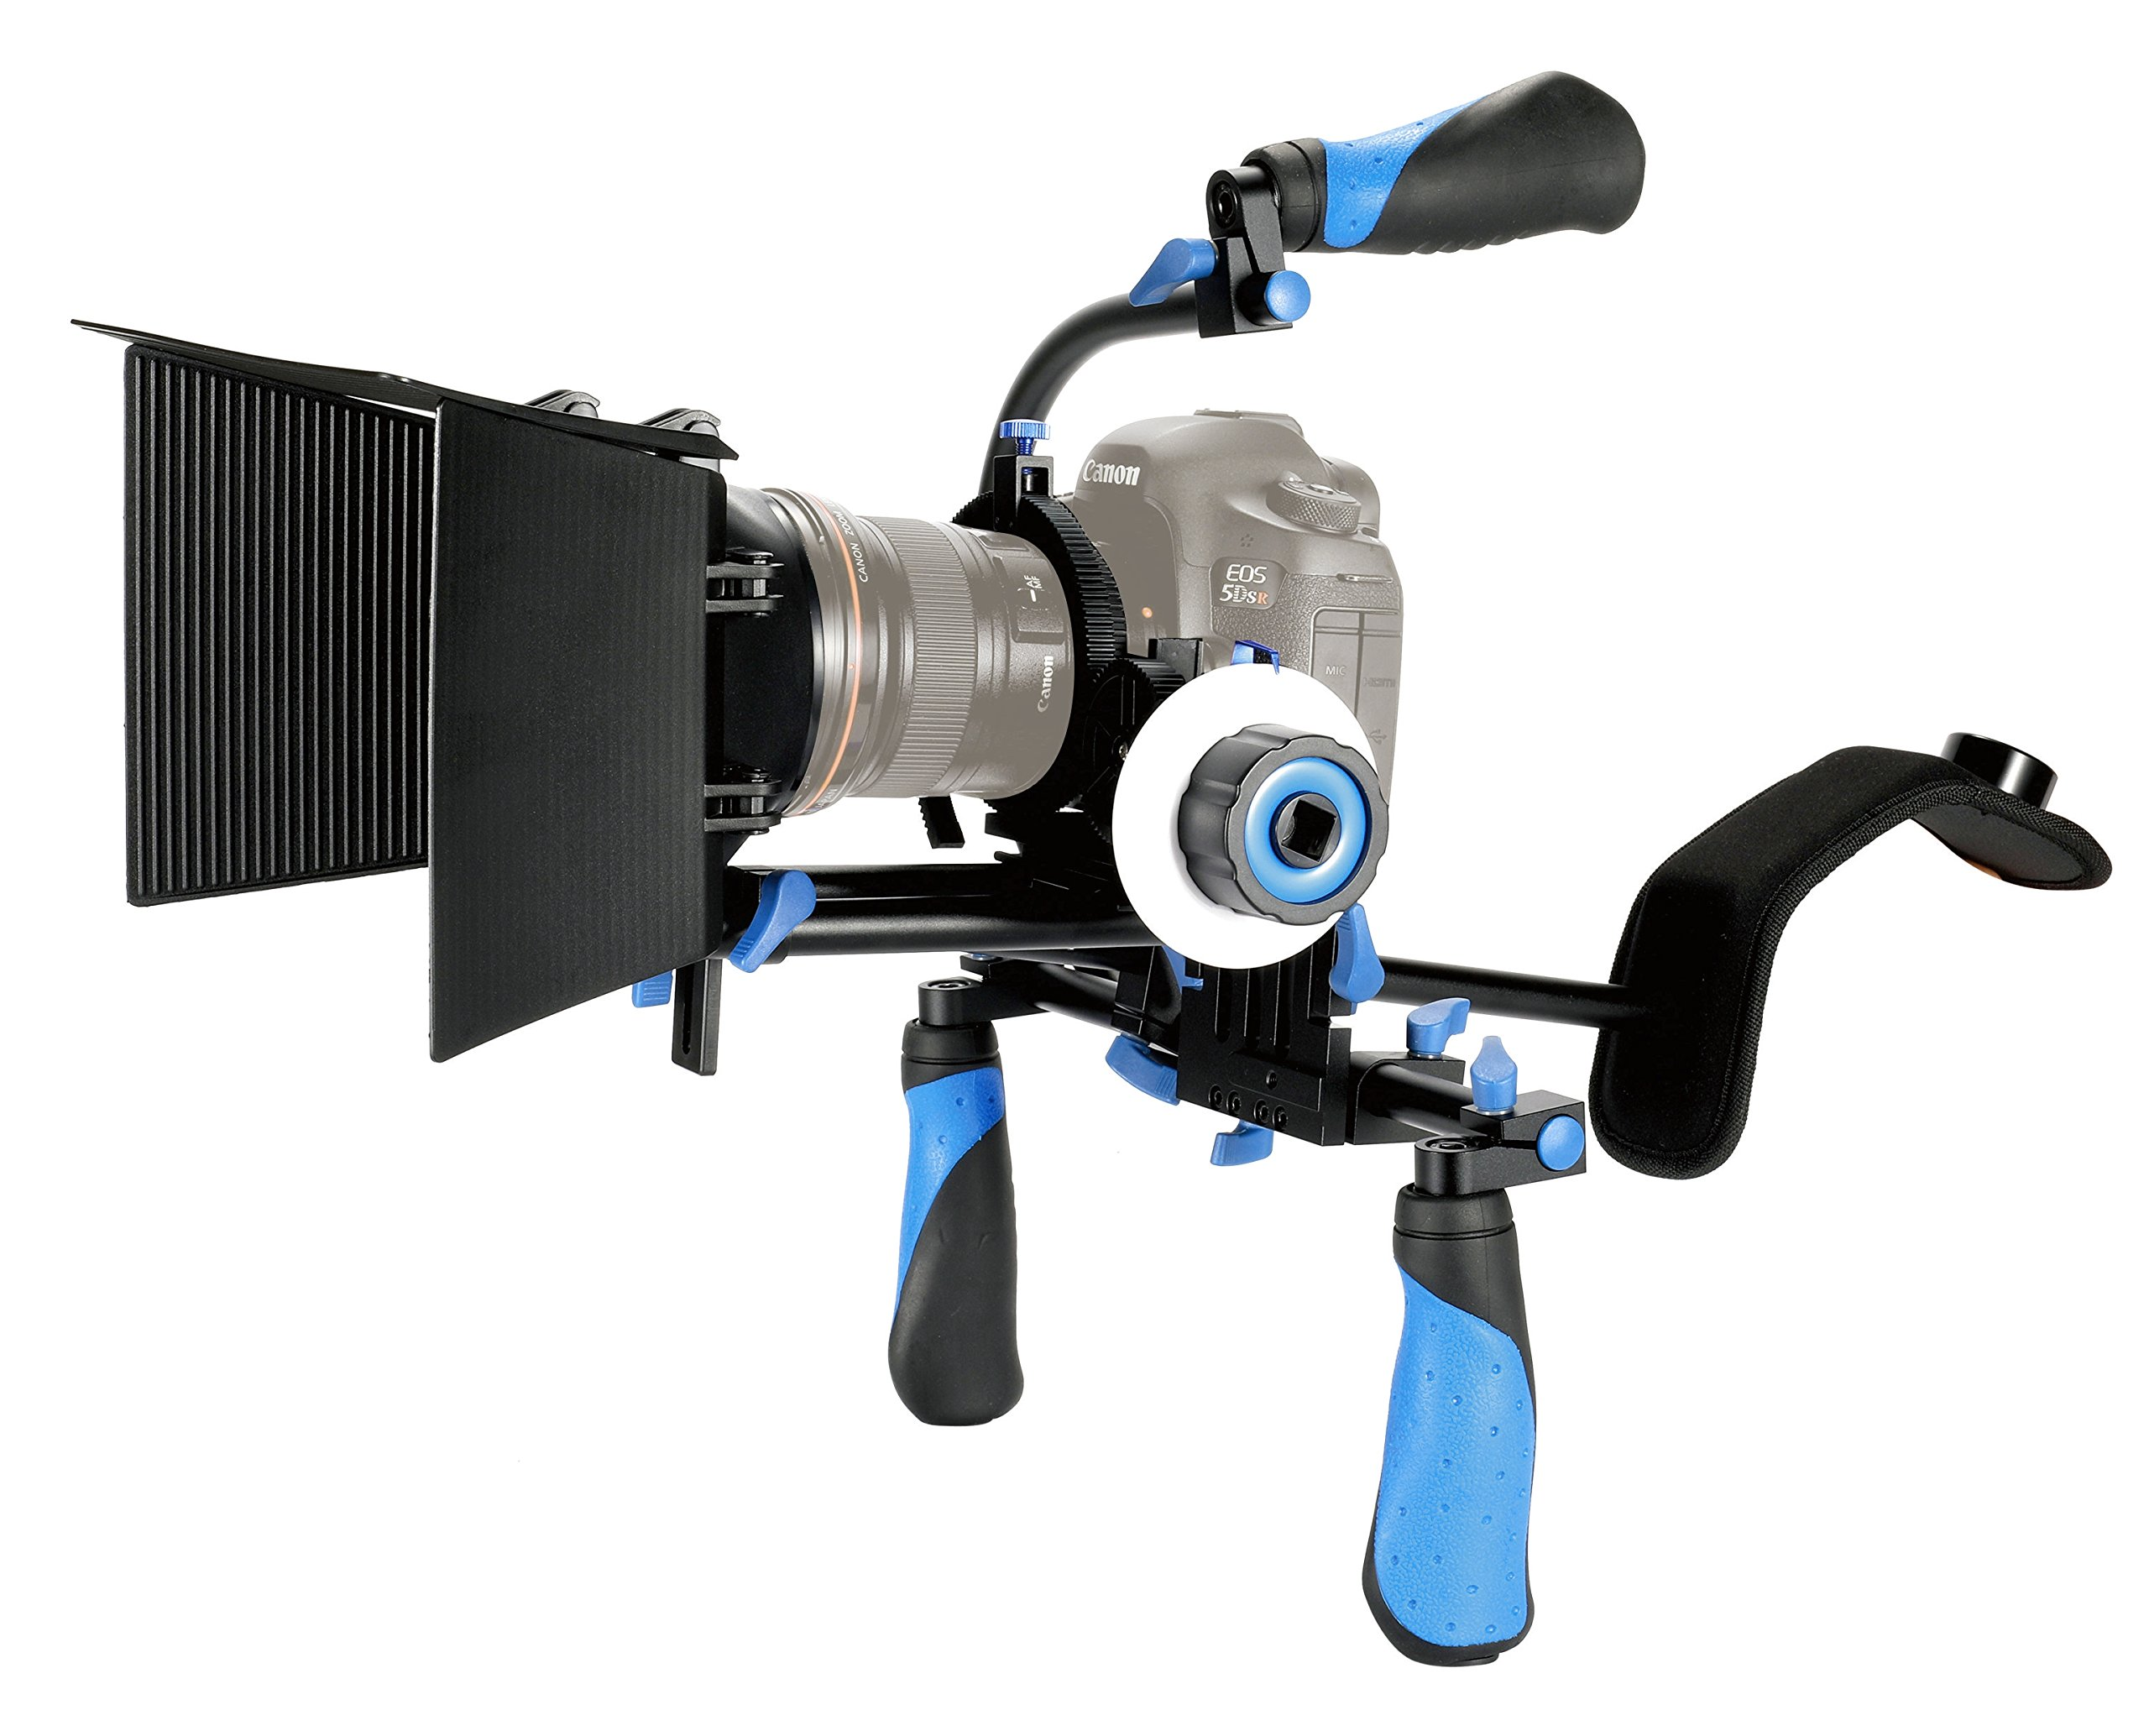 eimo DSLR Rig Set Movie Kit shoulder mount rig with Follow Focus and Matte Box and Top handle for All DSLR Cameras and Video Camcorders by SunSmart